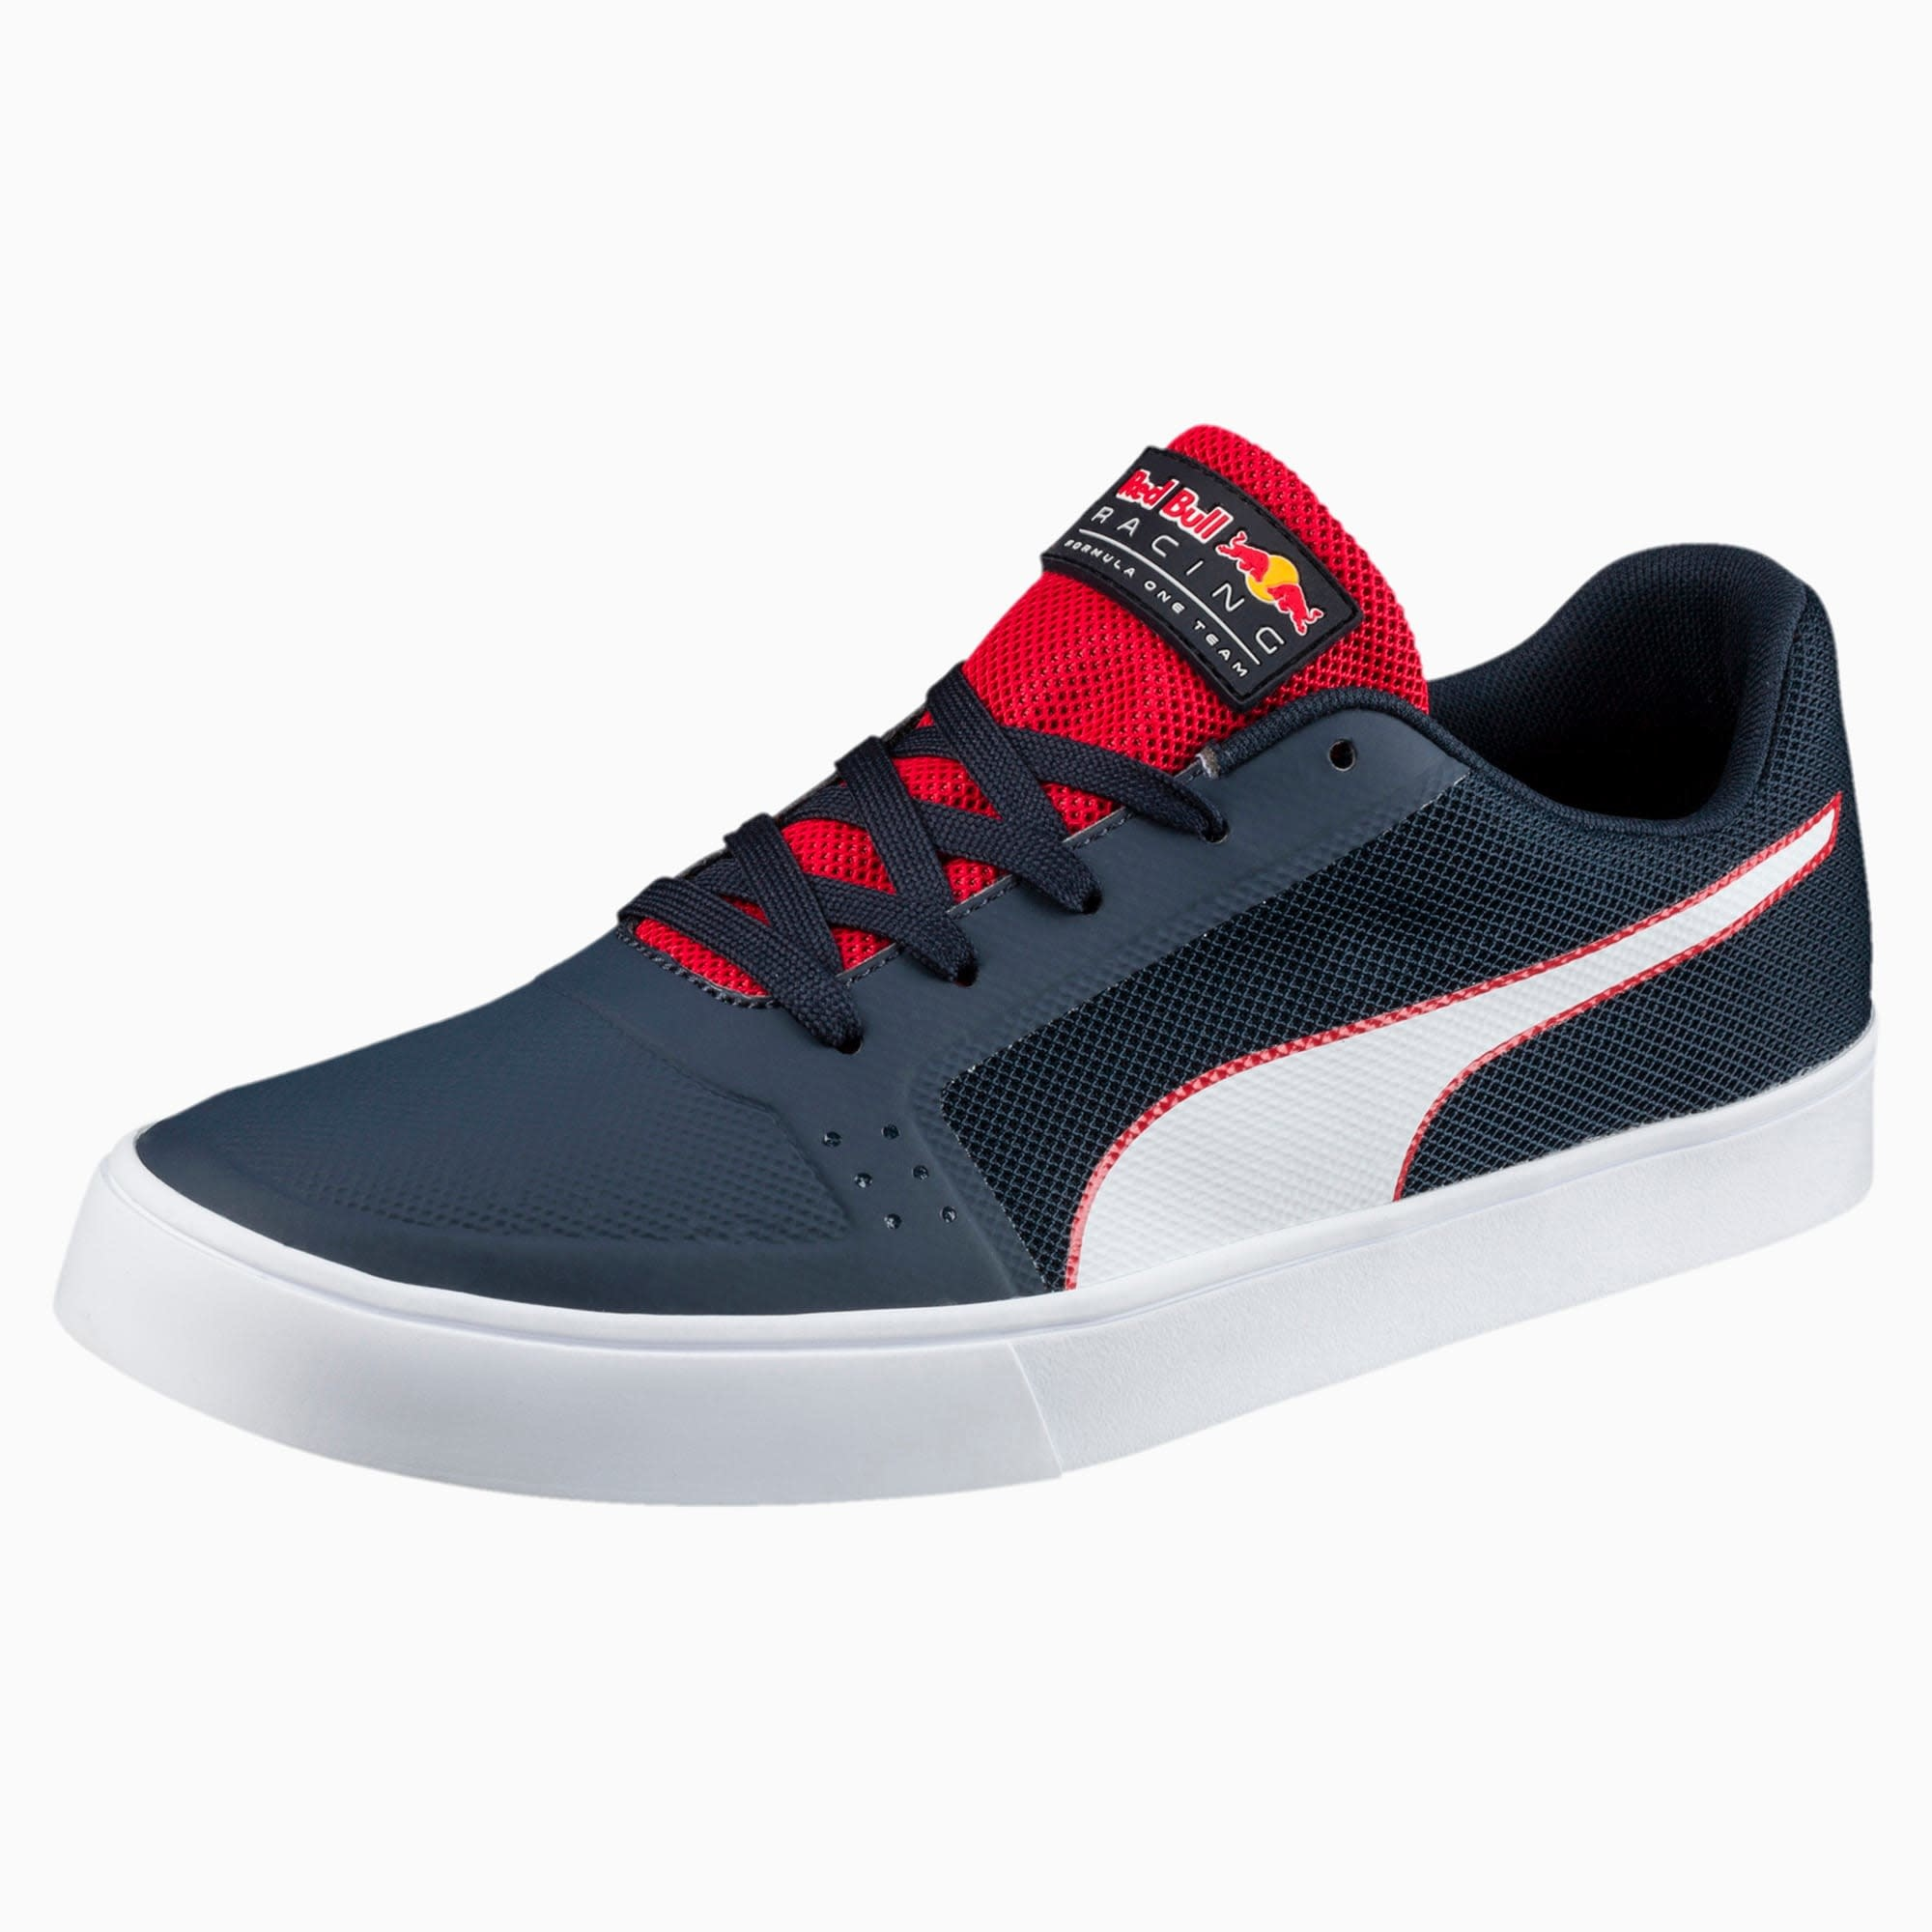 Red Bull Racing Vulc Shoes - The Racing Store